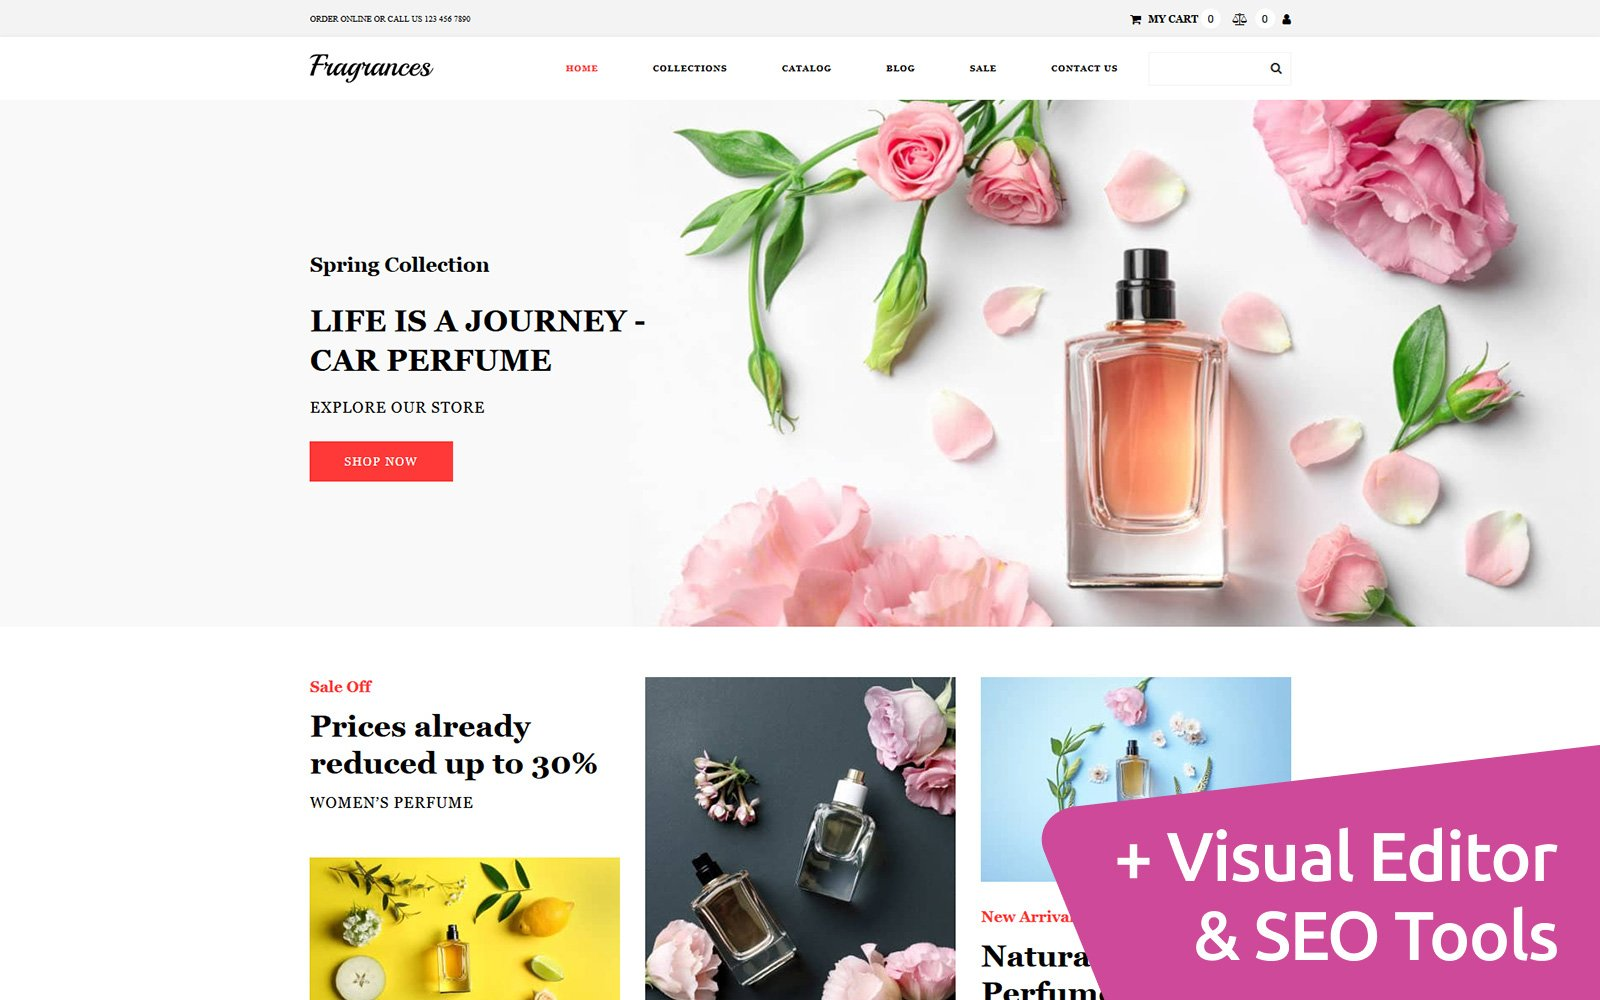 Fragrances - Perfume Store MotoCMS Ecommerce Template